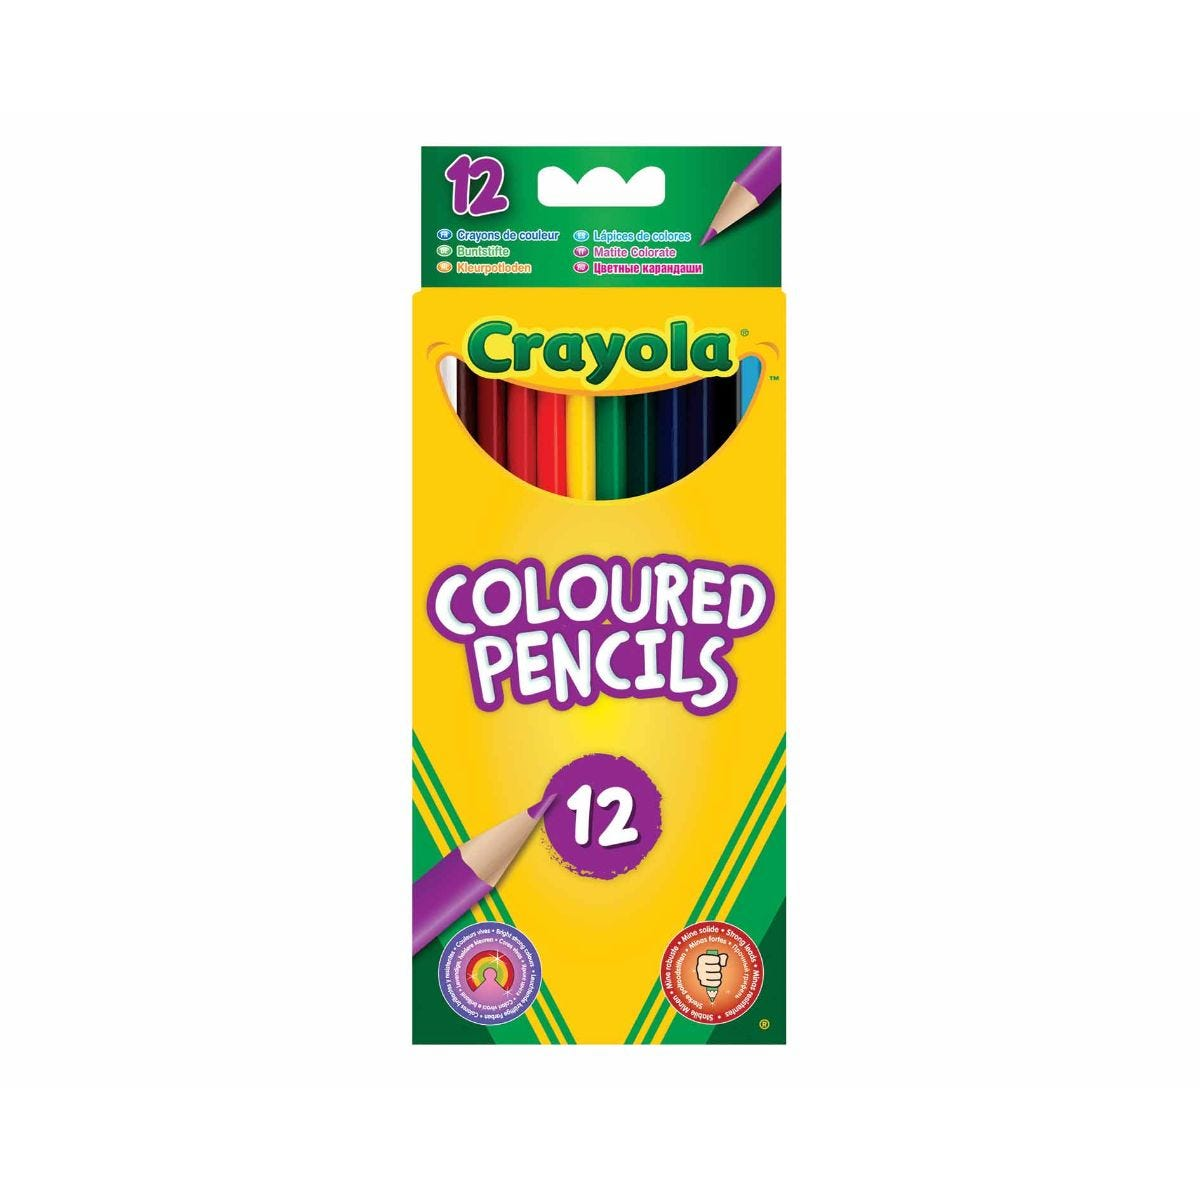 Crayola Coloured Pencils Pack of 12, Assorted